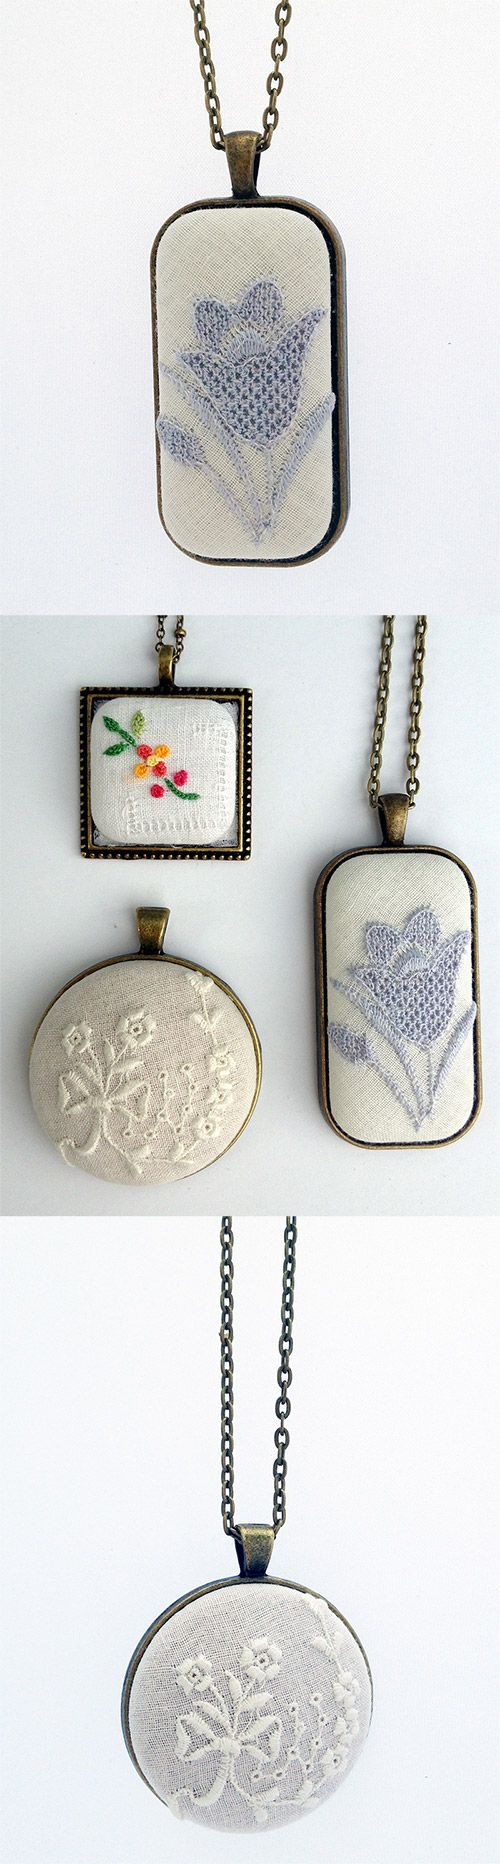 Love, love, love these vintage embroidery pendants! Pretty, one of a kind, unique boho style lace and embroidered textile jewelry by Ceci Leibovitz. http://www.cecileibovitz.com